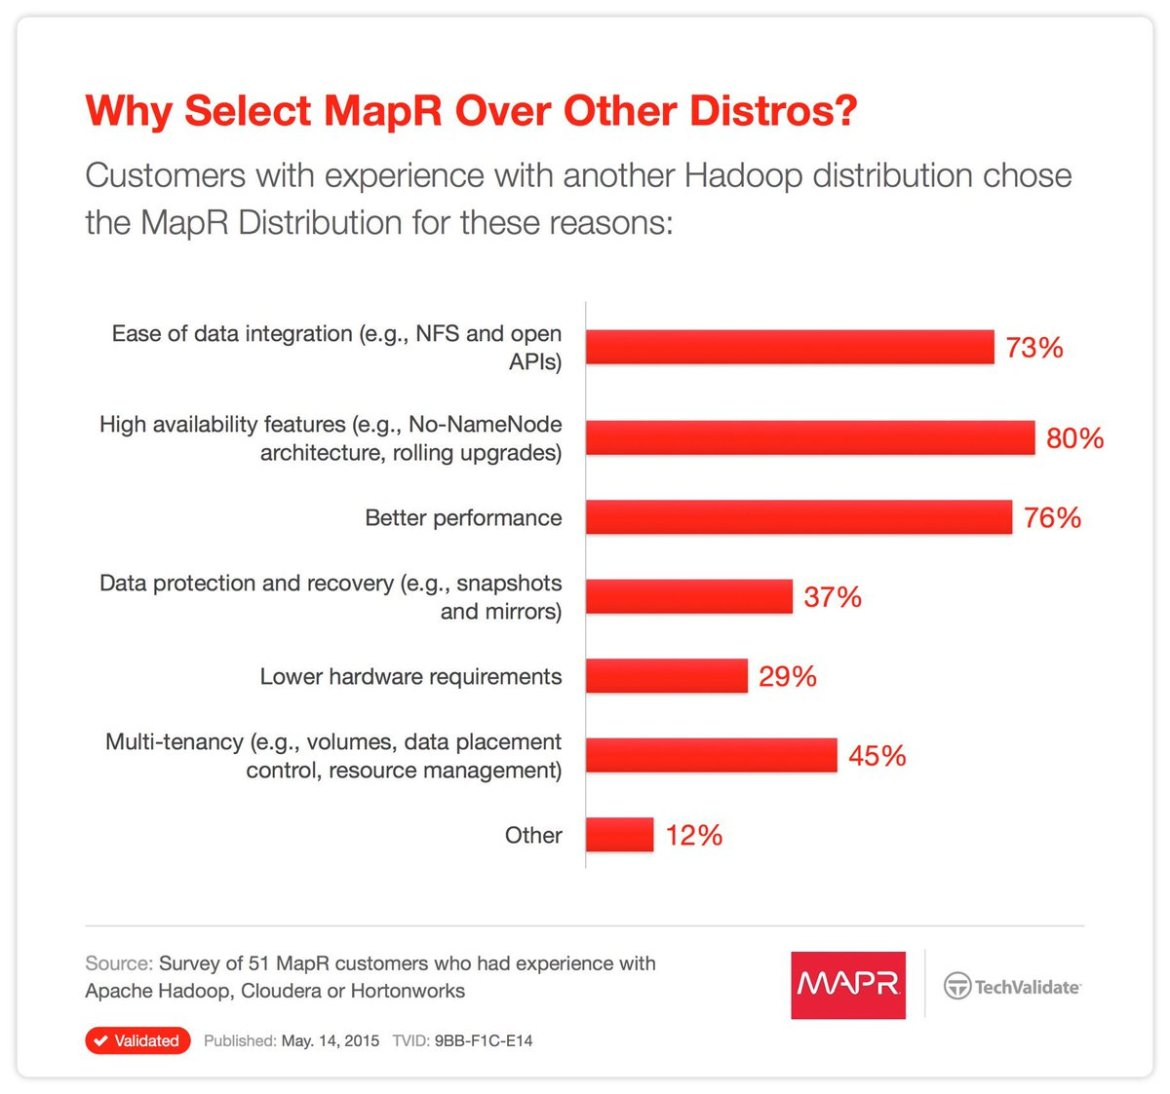 IDC shows @MapR customers gain 382% ROI from their Hadoop investments:  #BigData #Analytics